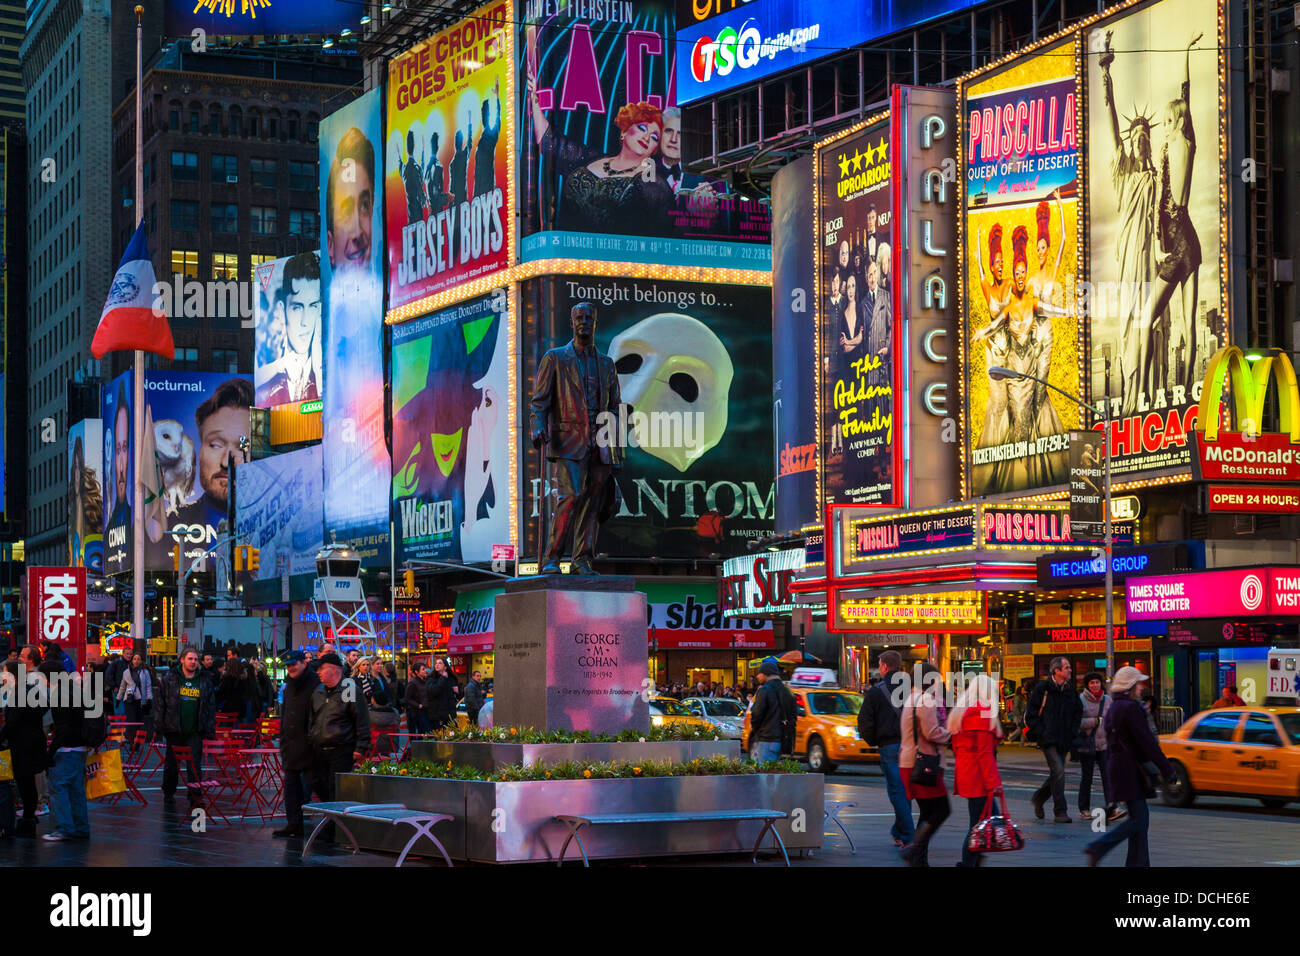 Set in the heart of Times Square, Millennium Broadway is your quiet escape in the city that never sleeps. Enjoy convenient access to New York's famed Broadway theatres, including our .